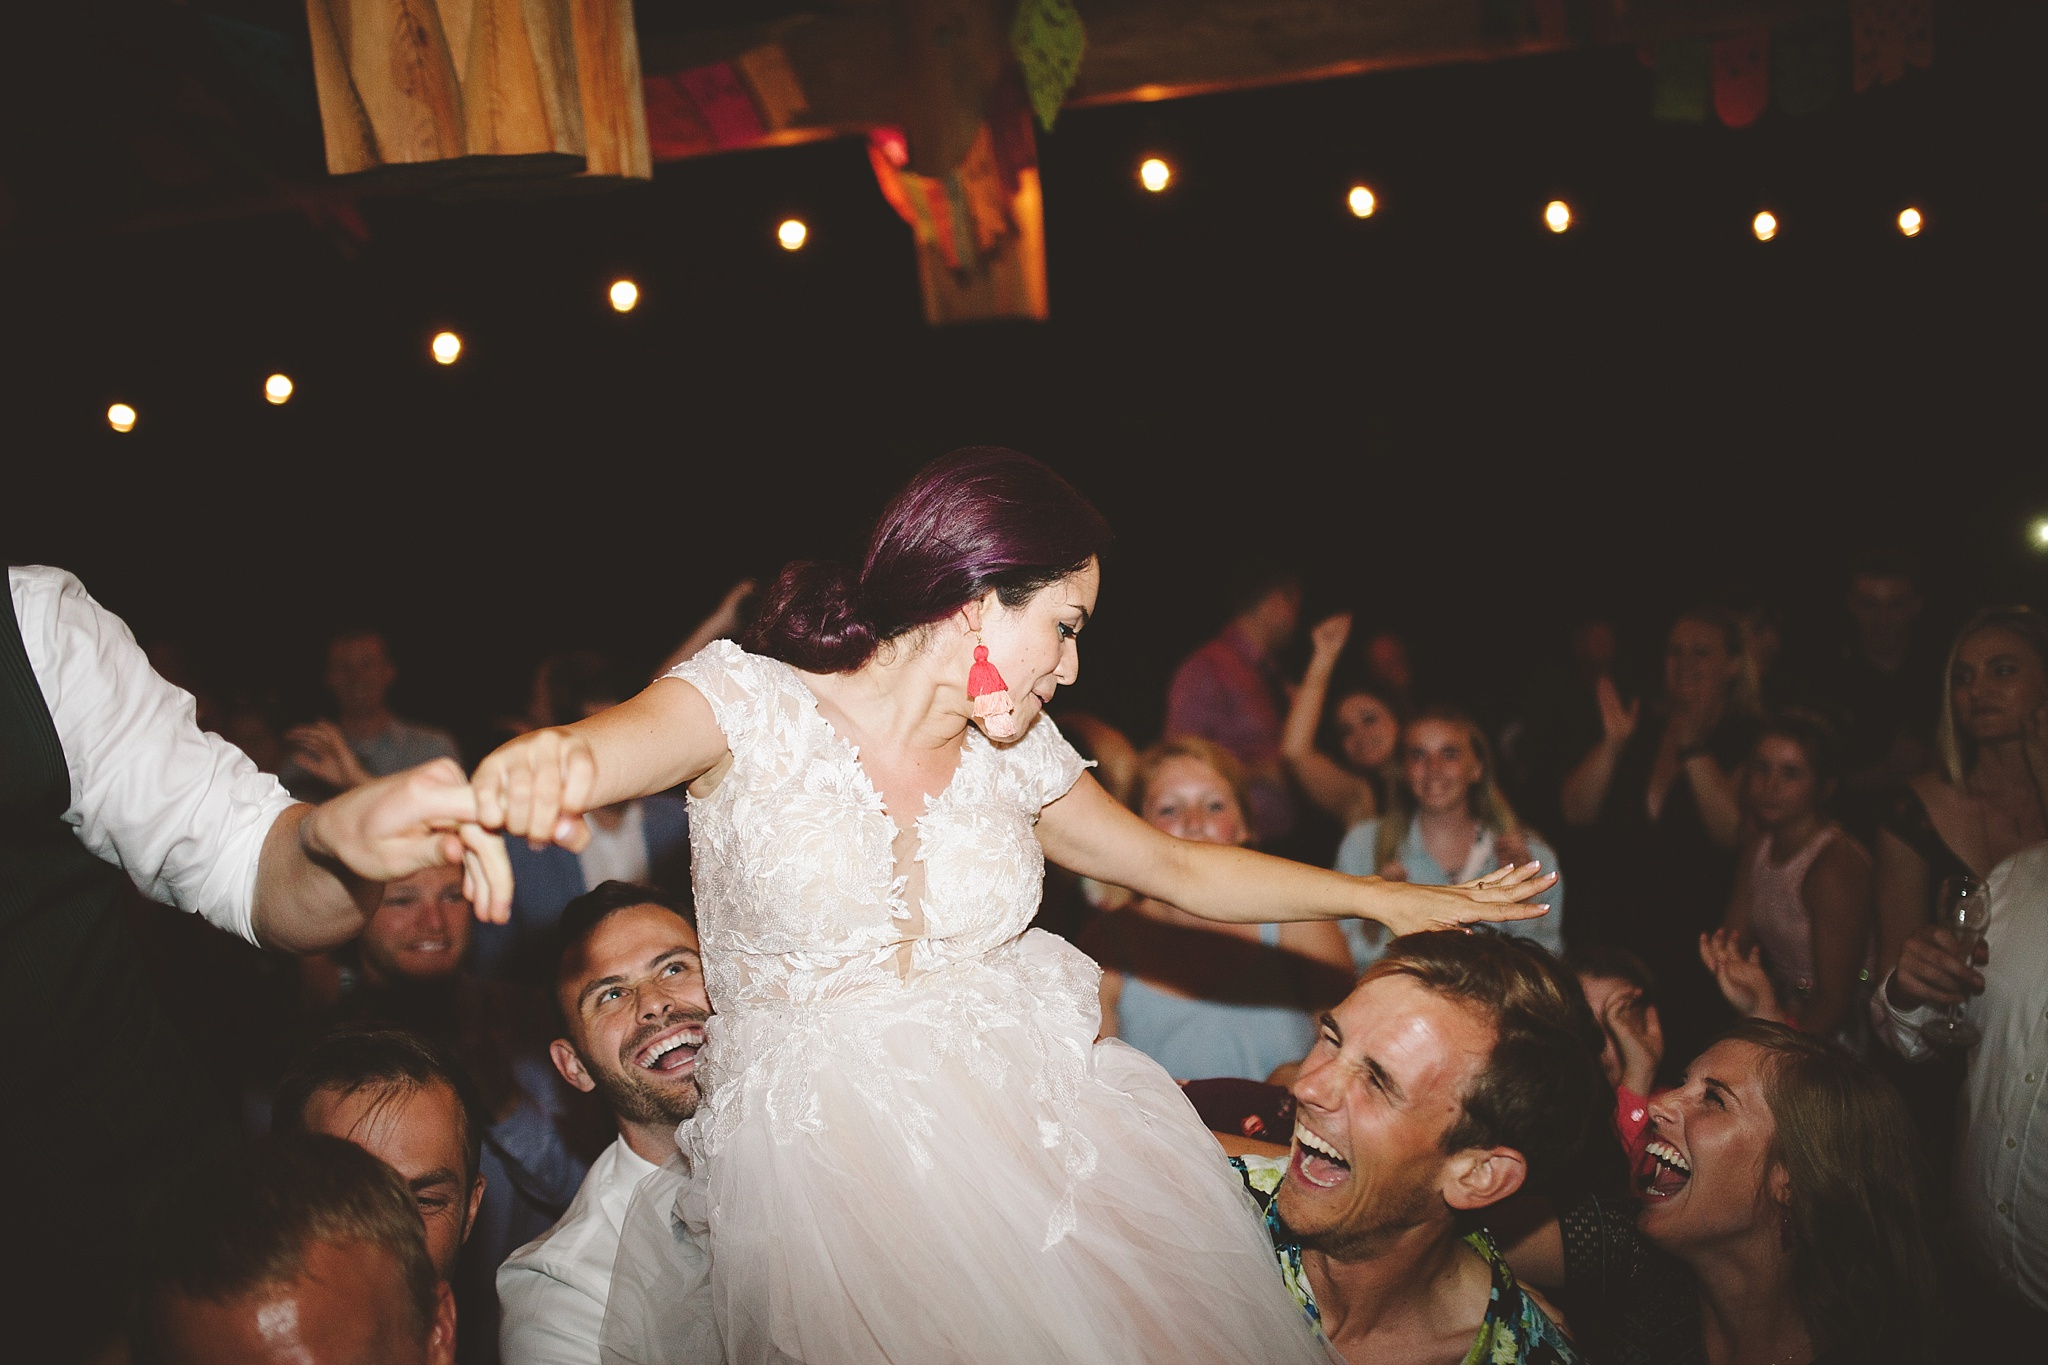 wild dance party at wedding in the woods